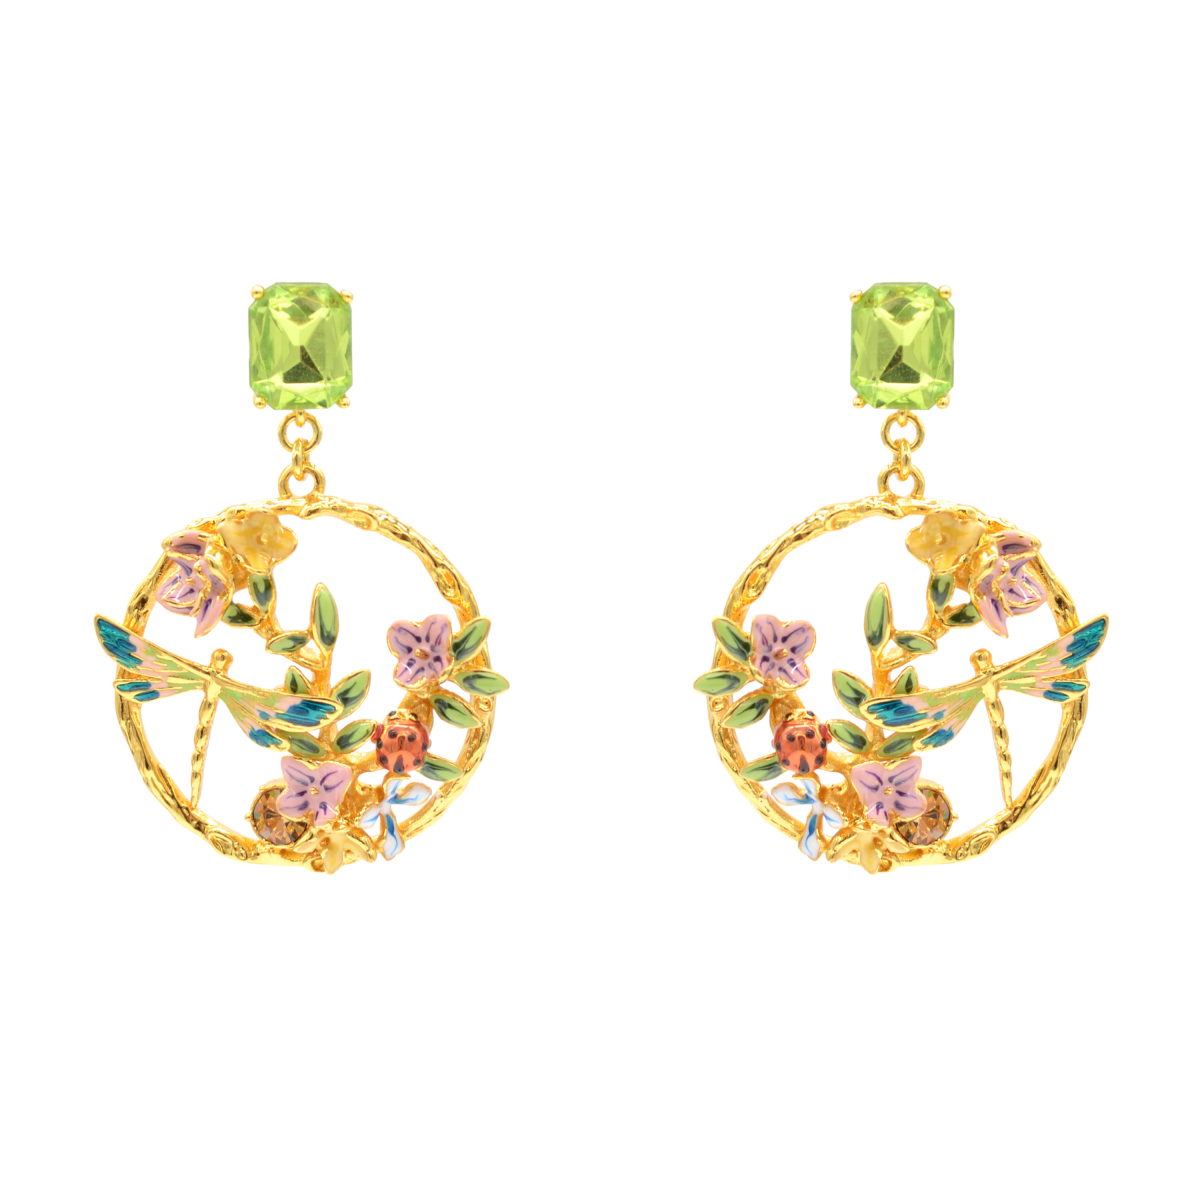 Dragonfly & Floral Statement Earrings